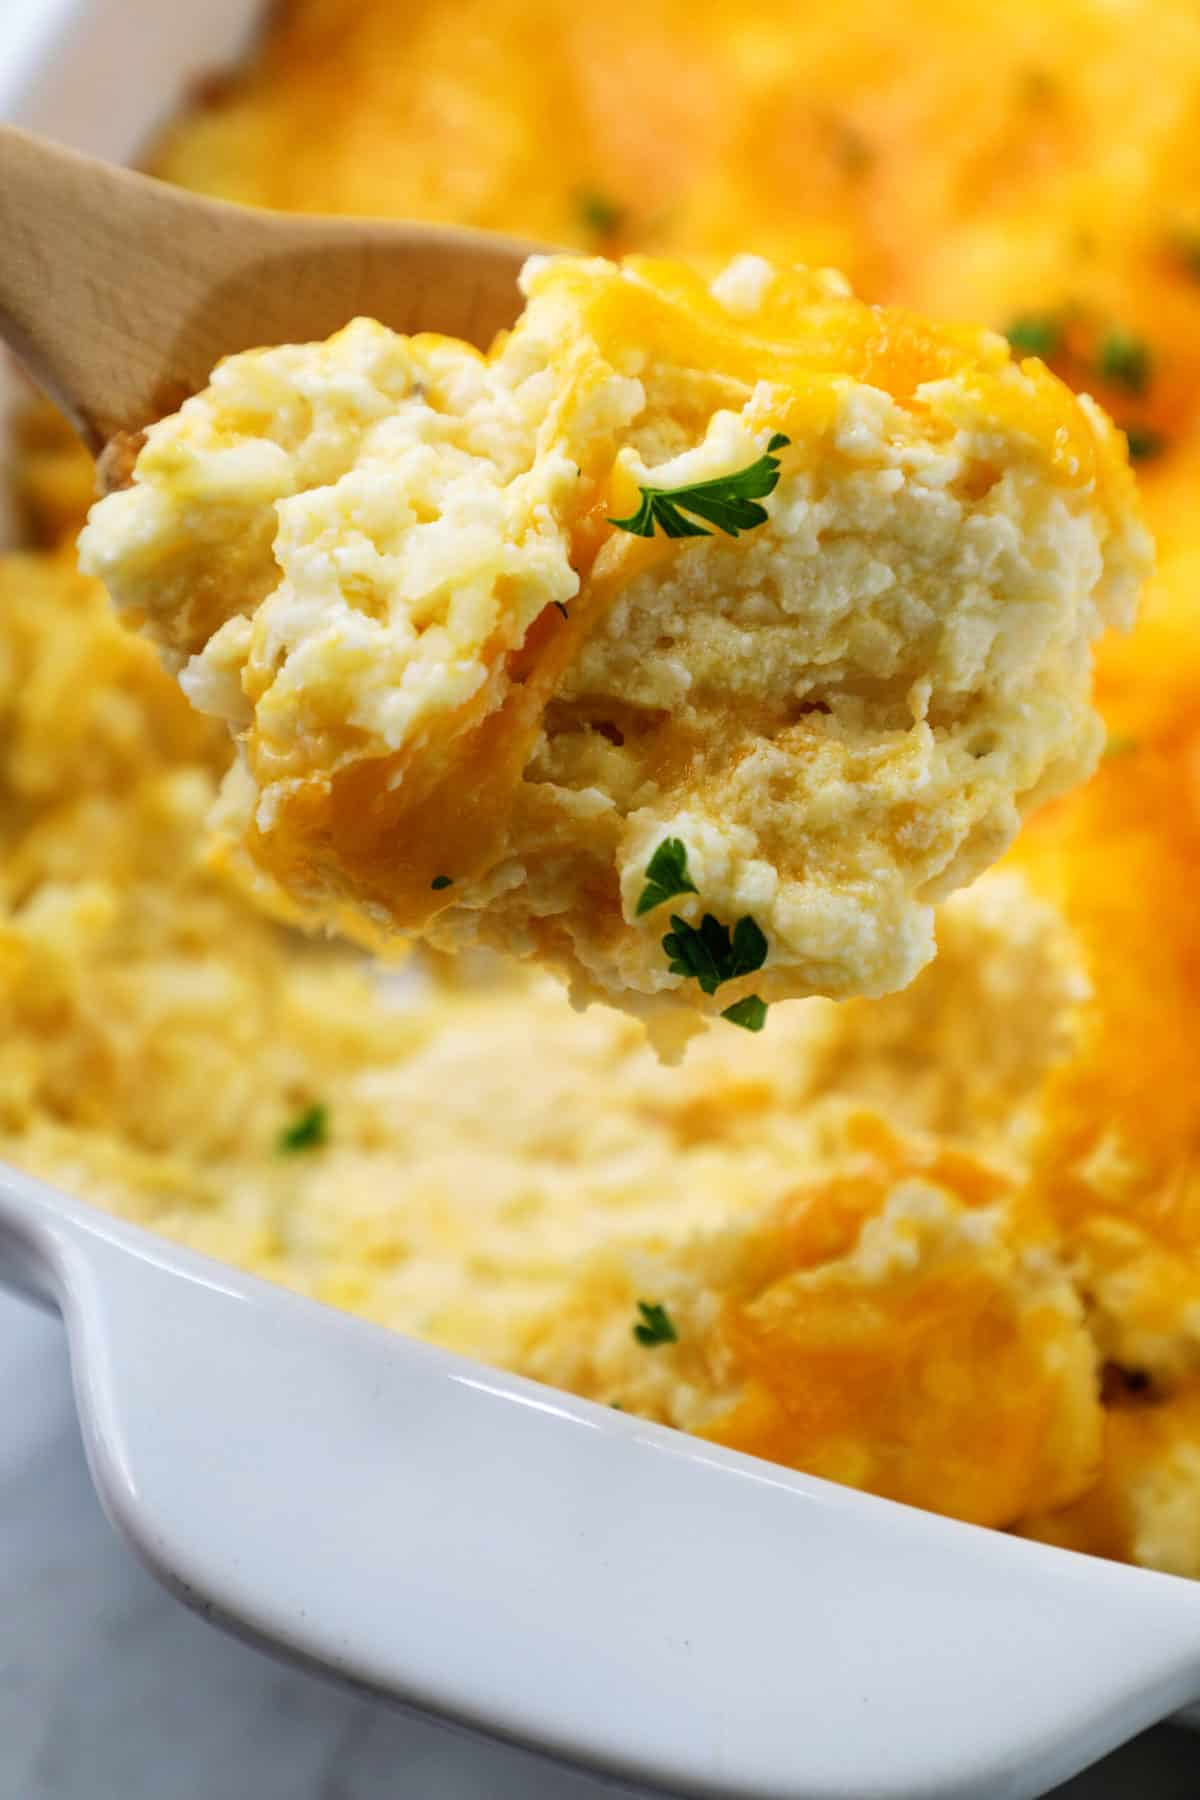 wooden spoonful of hashbrown casserole